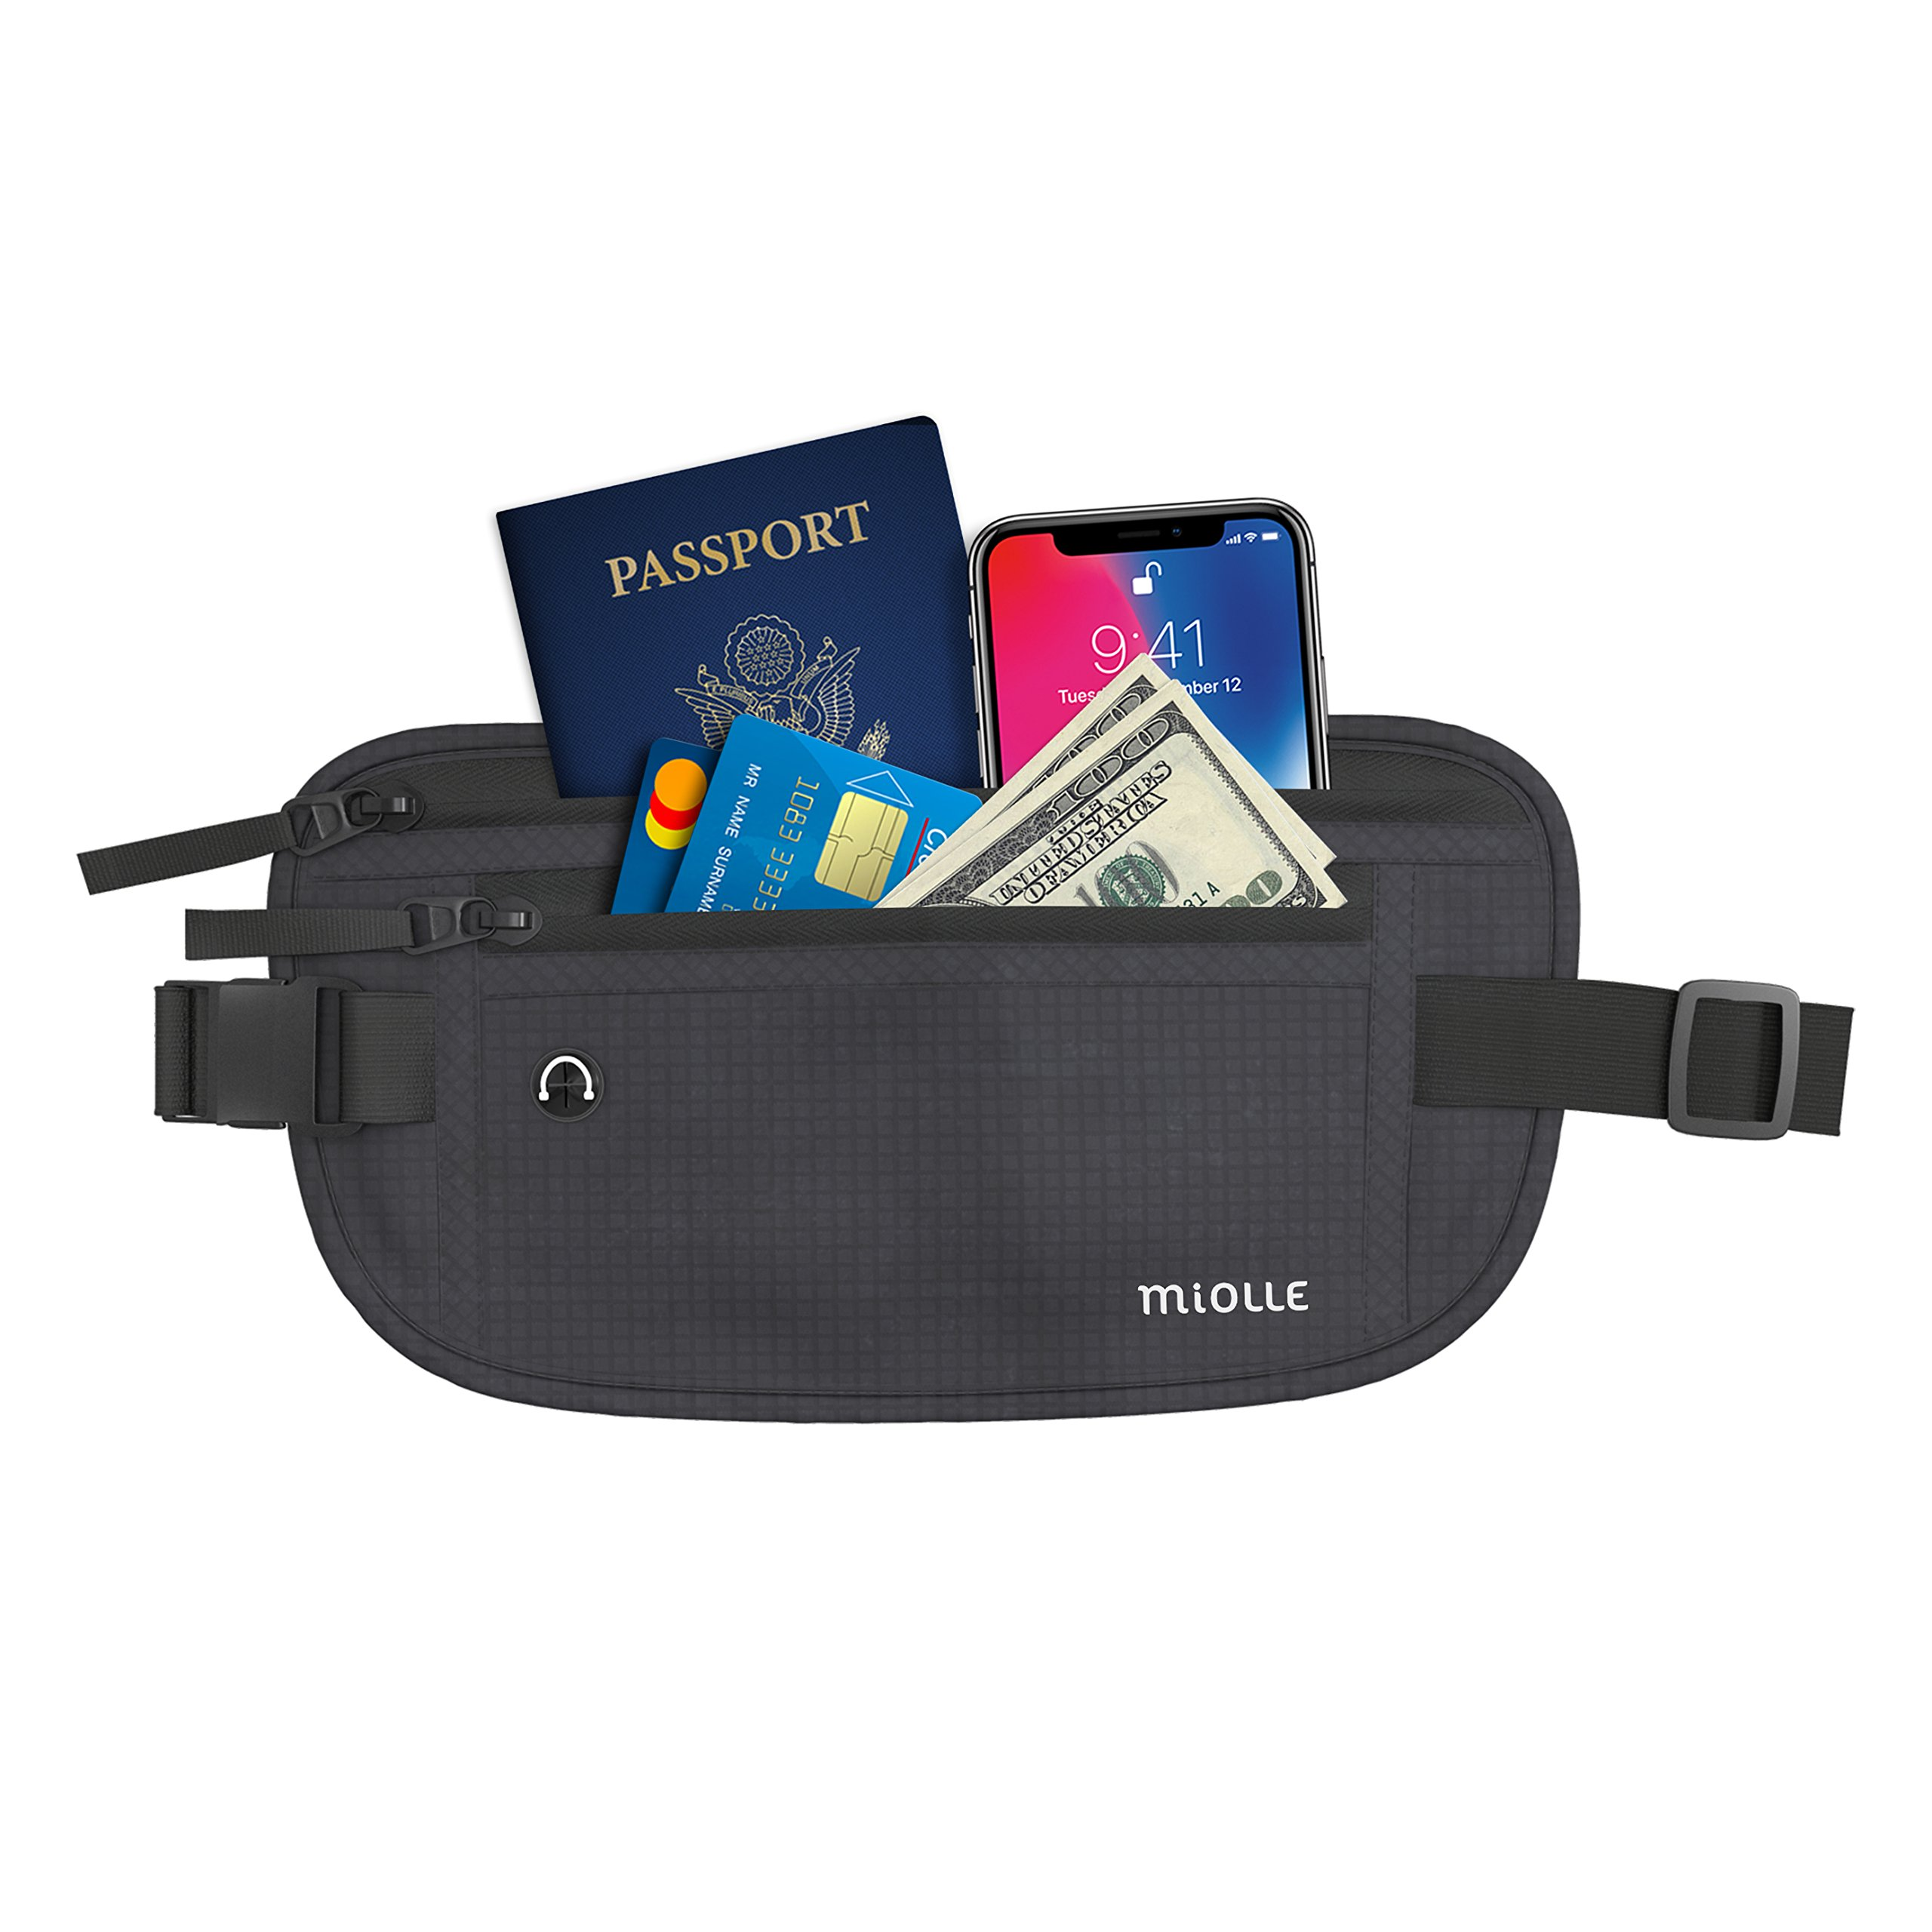 Money Belt for Travel RFID Waterproof - Running Pack - Waist Pack - Hidden Wallet - Travel Wallet - Security Money Belts